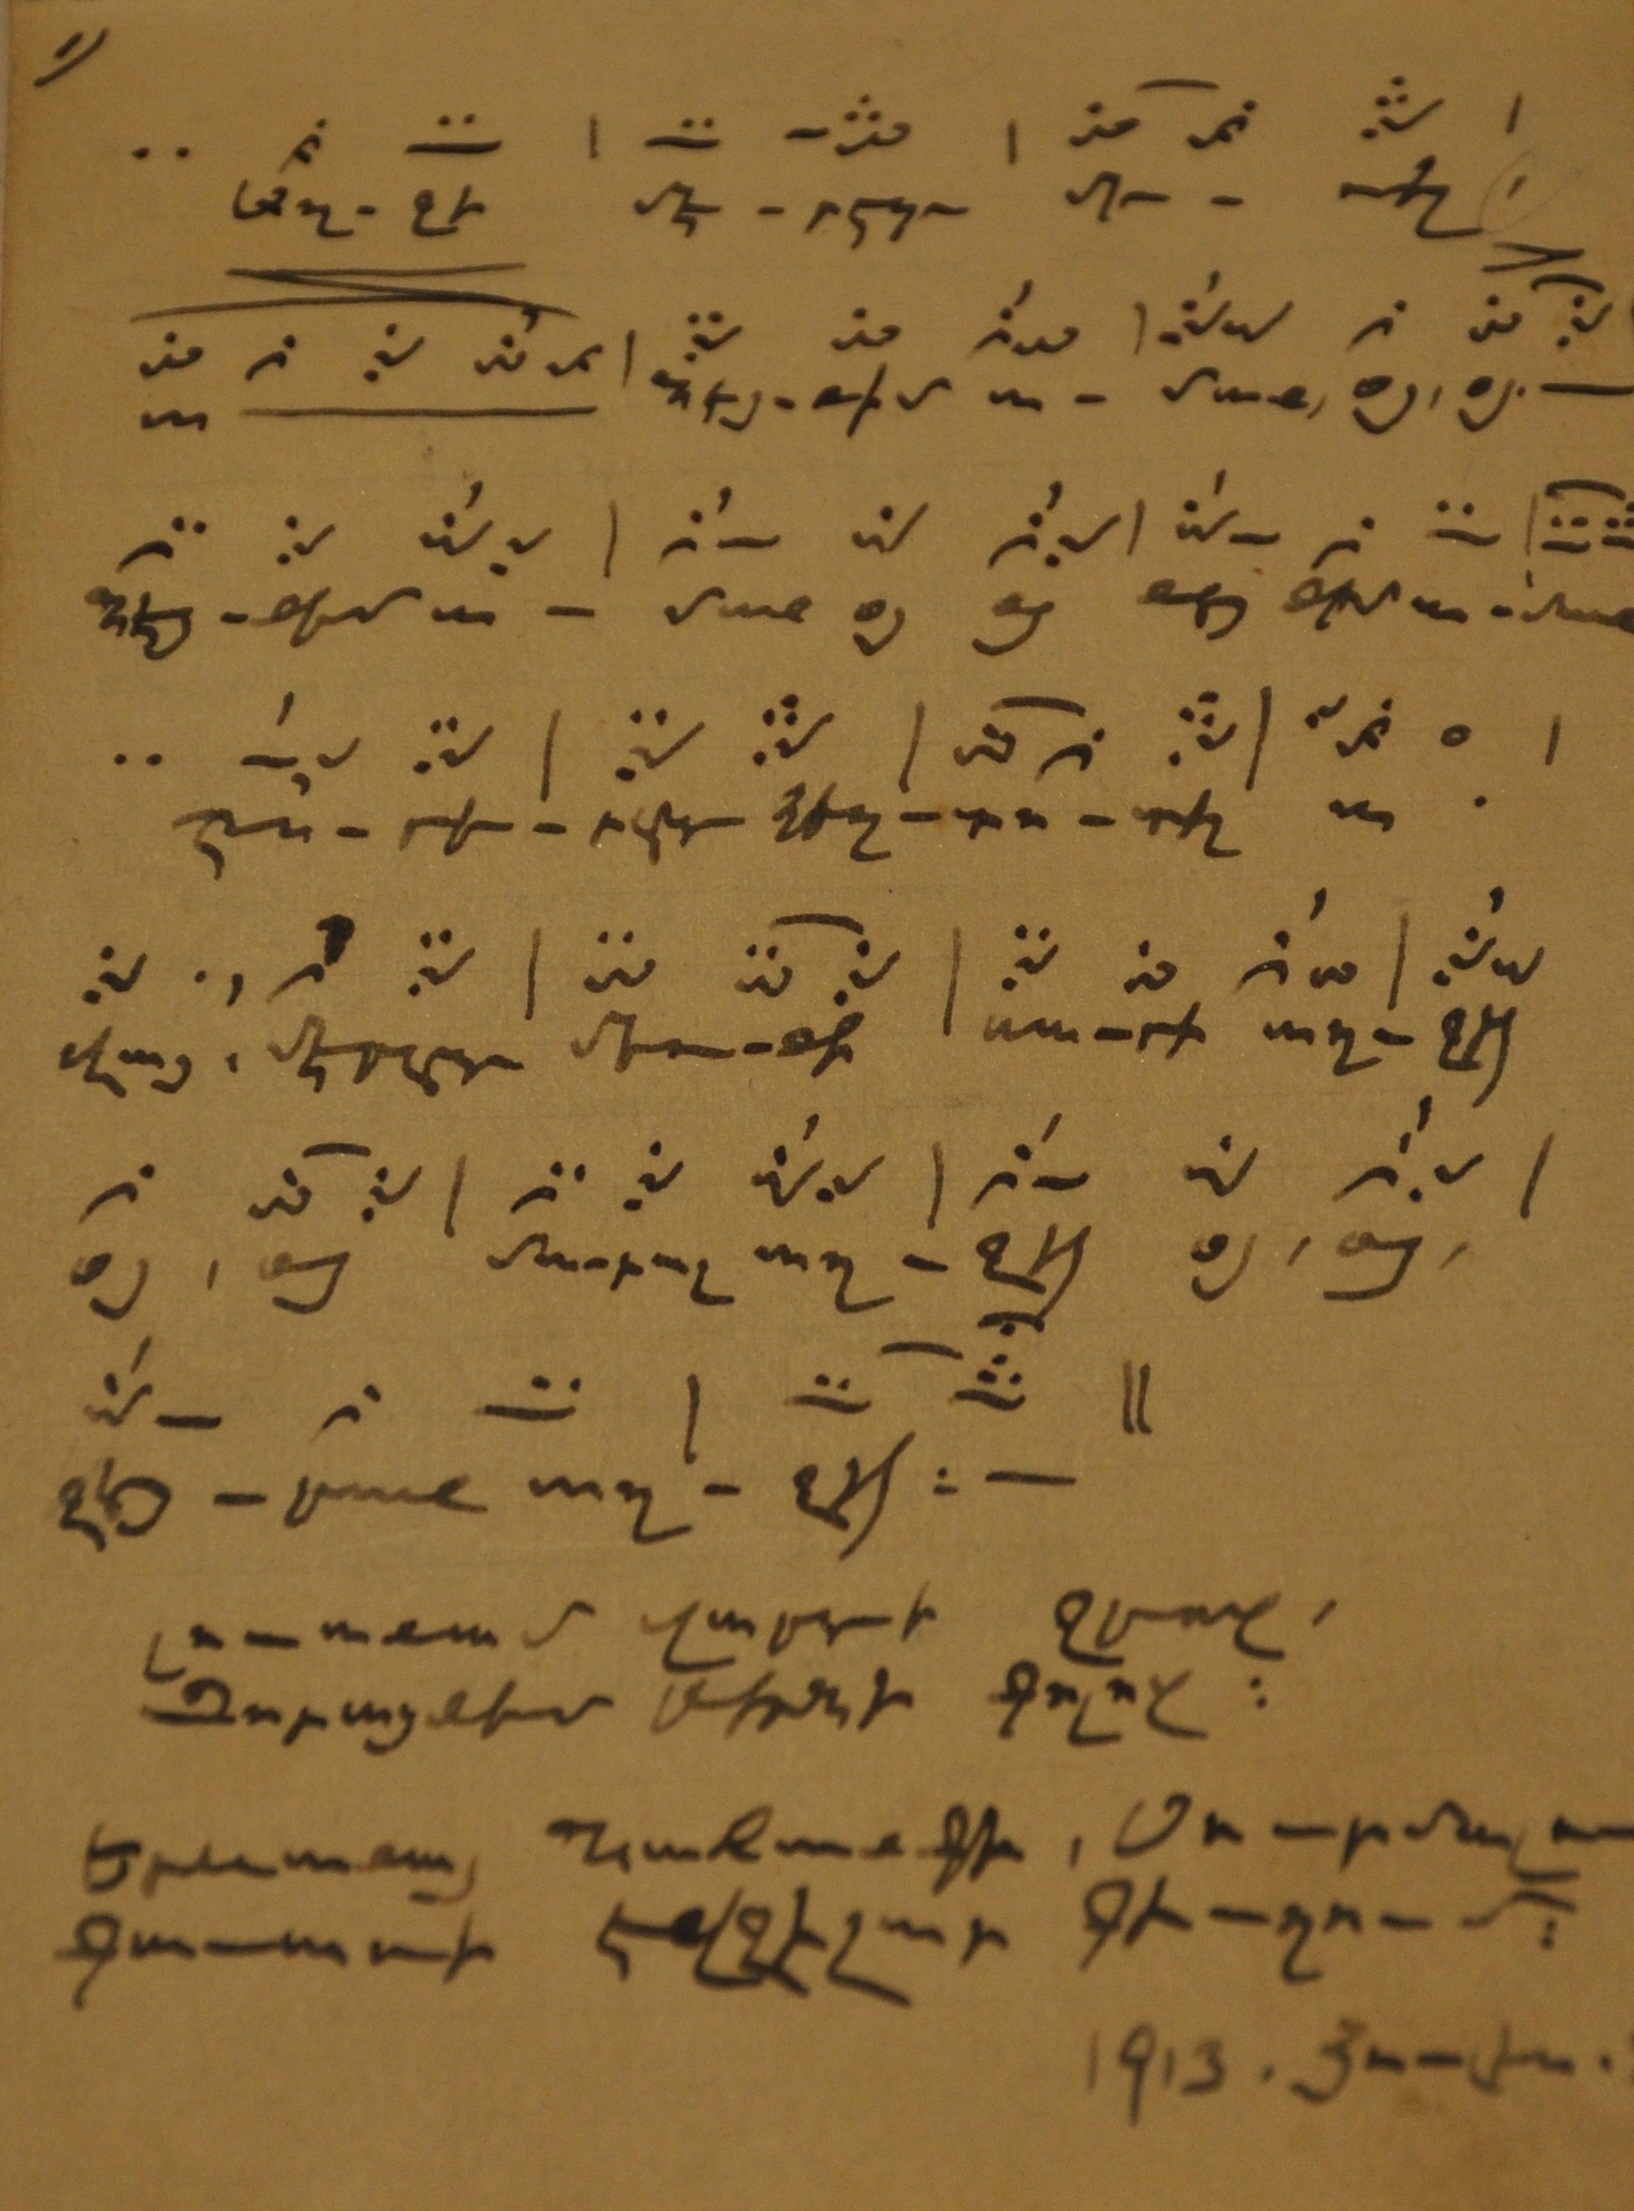 Komitas's handwriting by Armenian musical notation